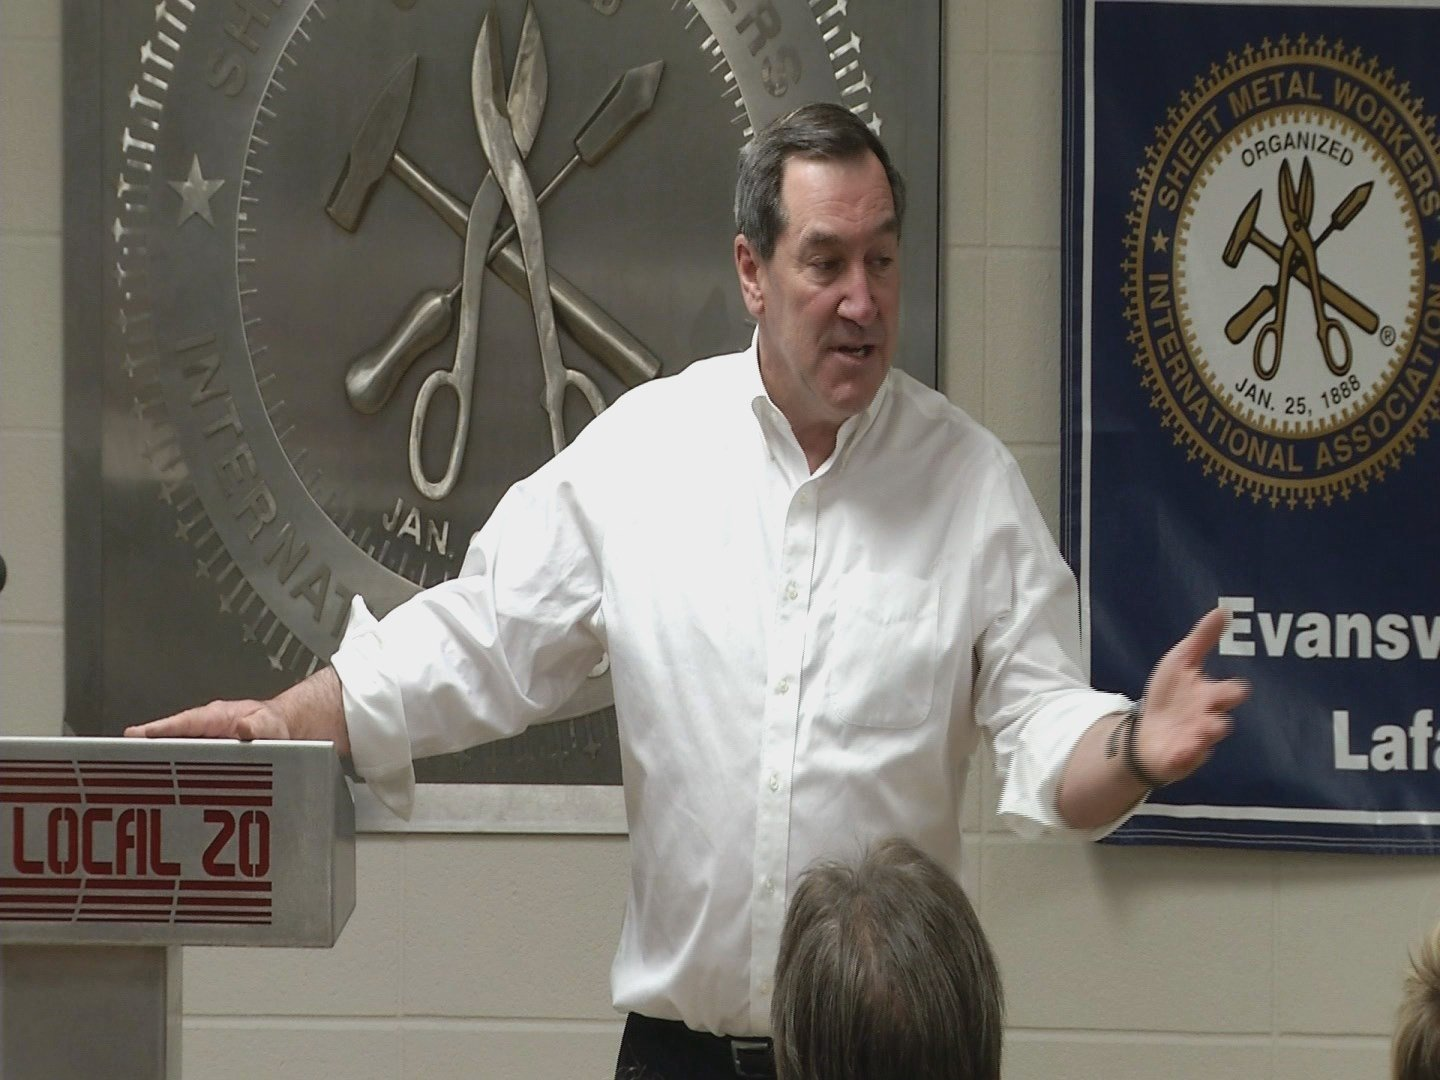 Sen. Joe Donnelly (D-IN) addresses labor leaders at Sheet Metal Workers Local 20 Sunday